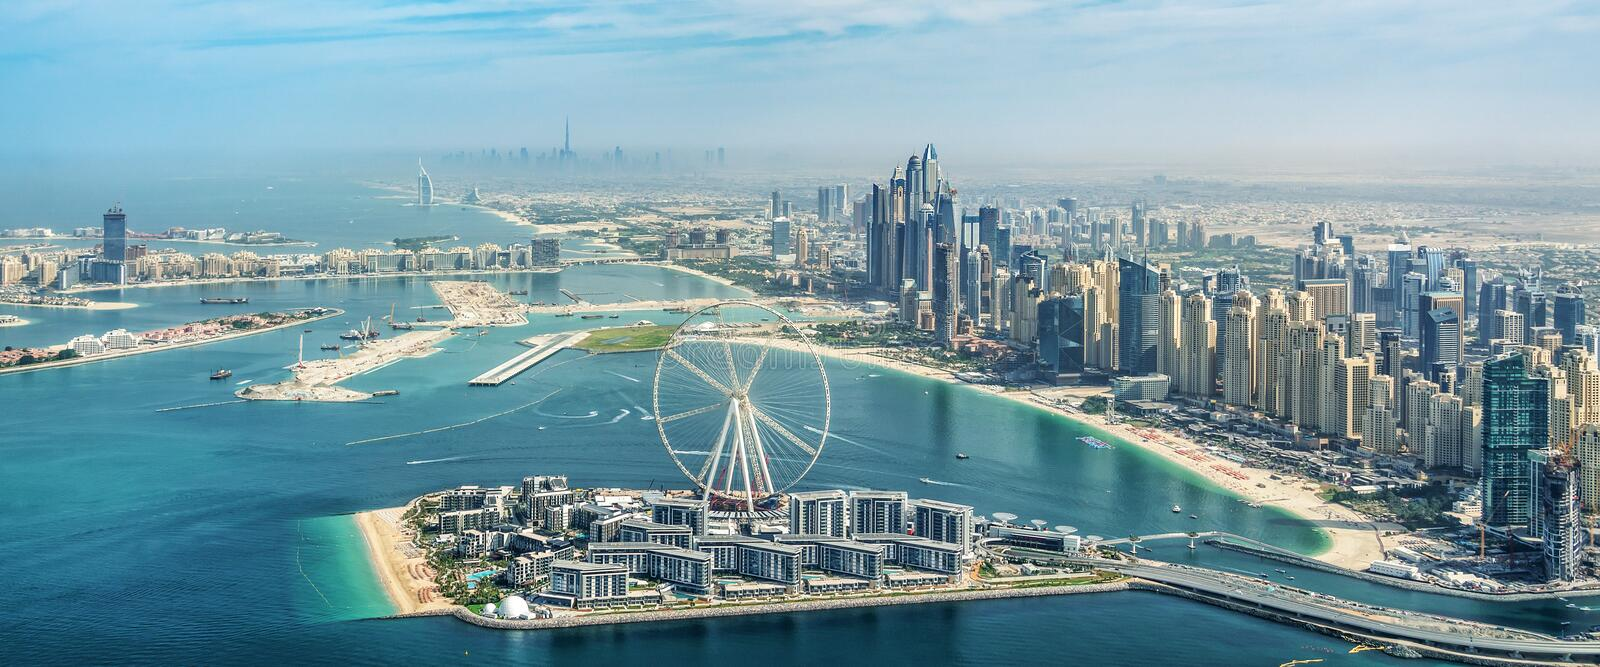 Panoramic aerial view of Dubai Marina skyline with Dubai Eye ferris wheel, UAE royalty free stock image